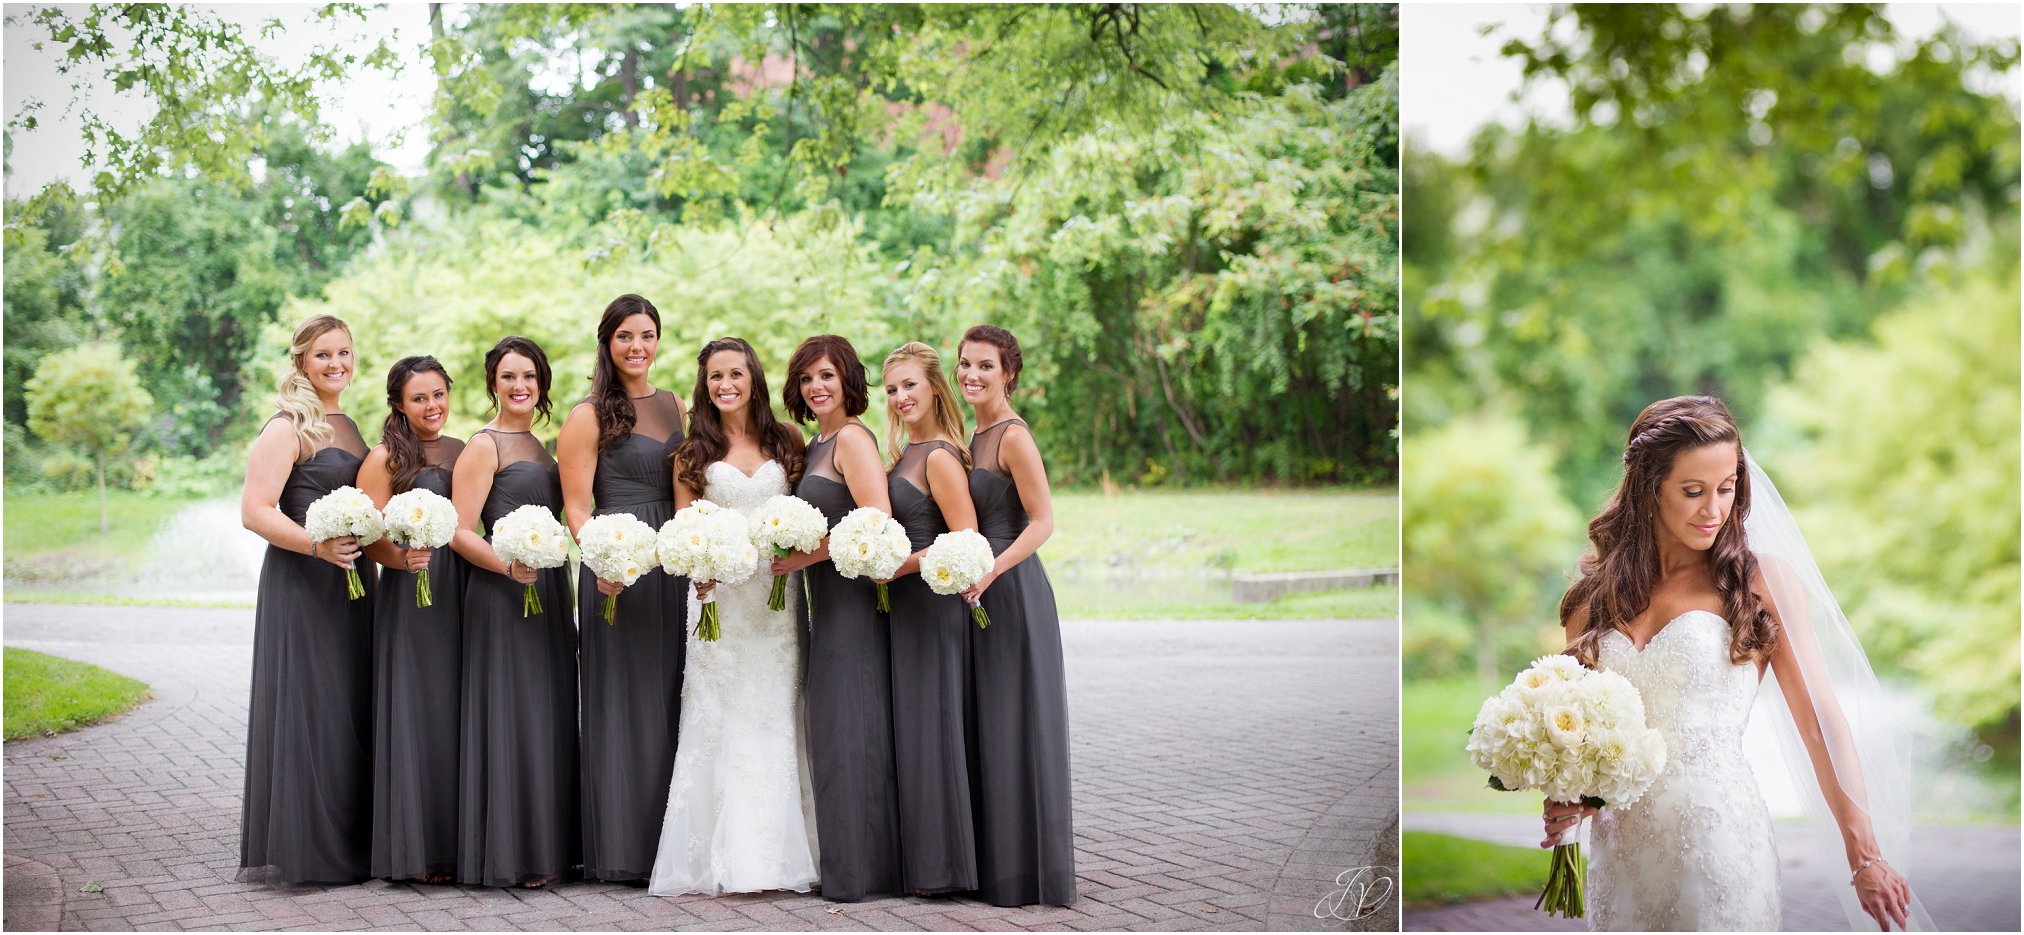 bride and bridesmaids in grey dresses